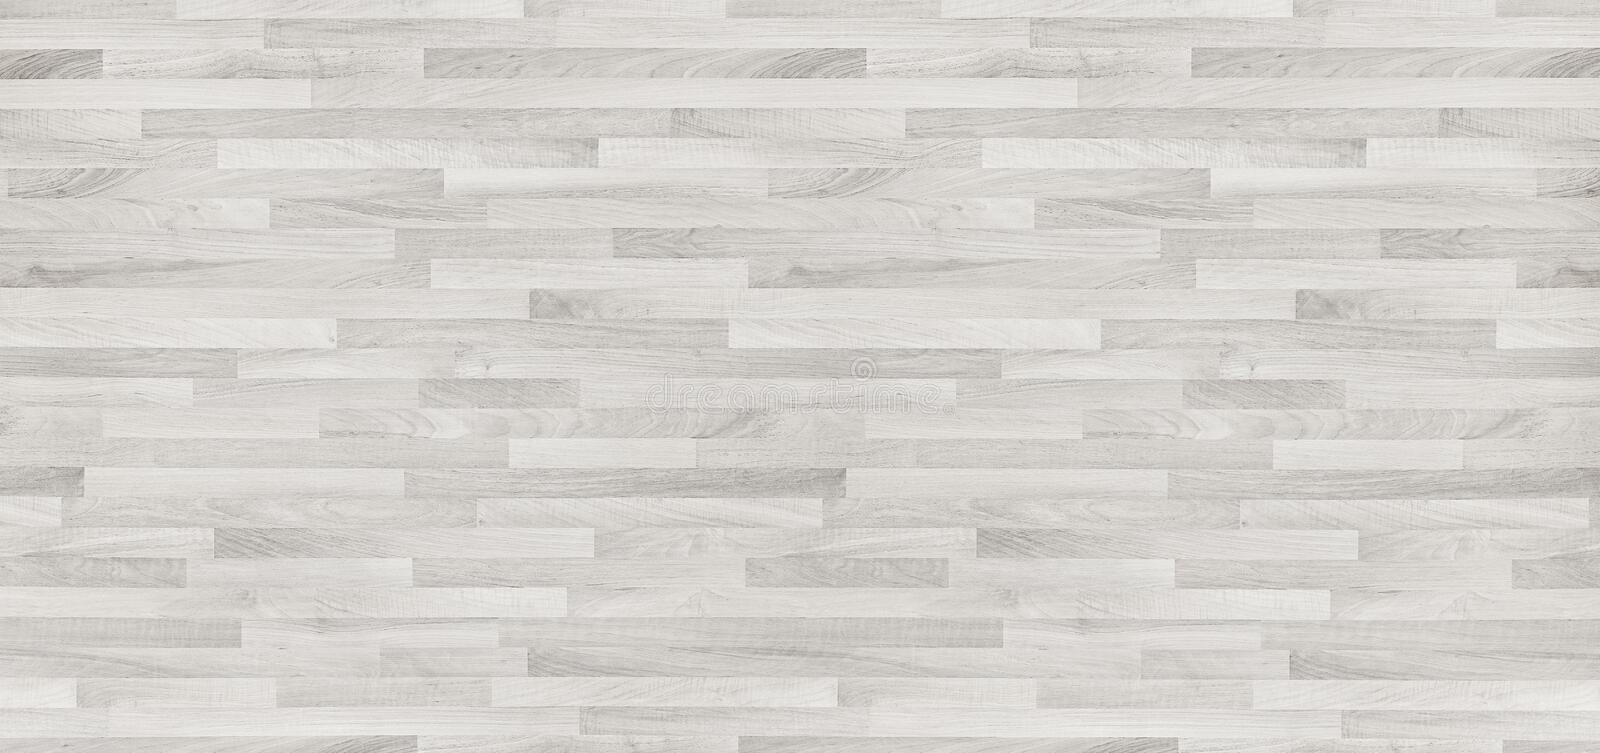 White Washed Wooden Parquet Texture Wood Texture For